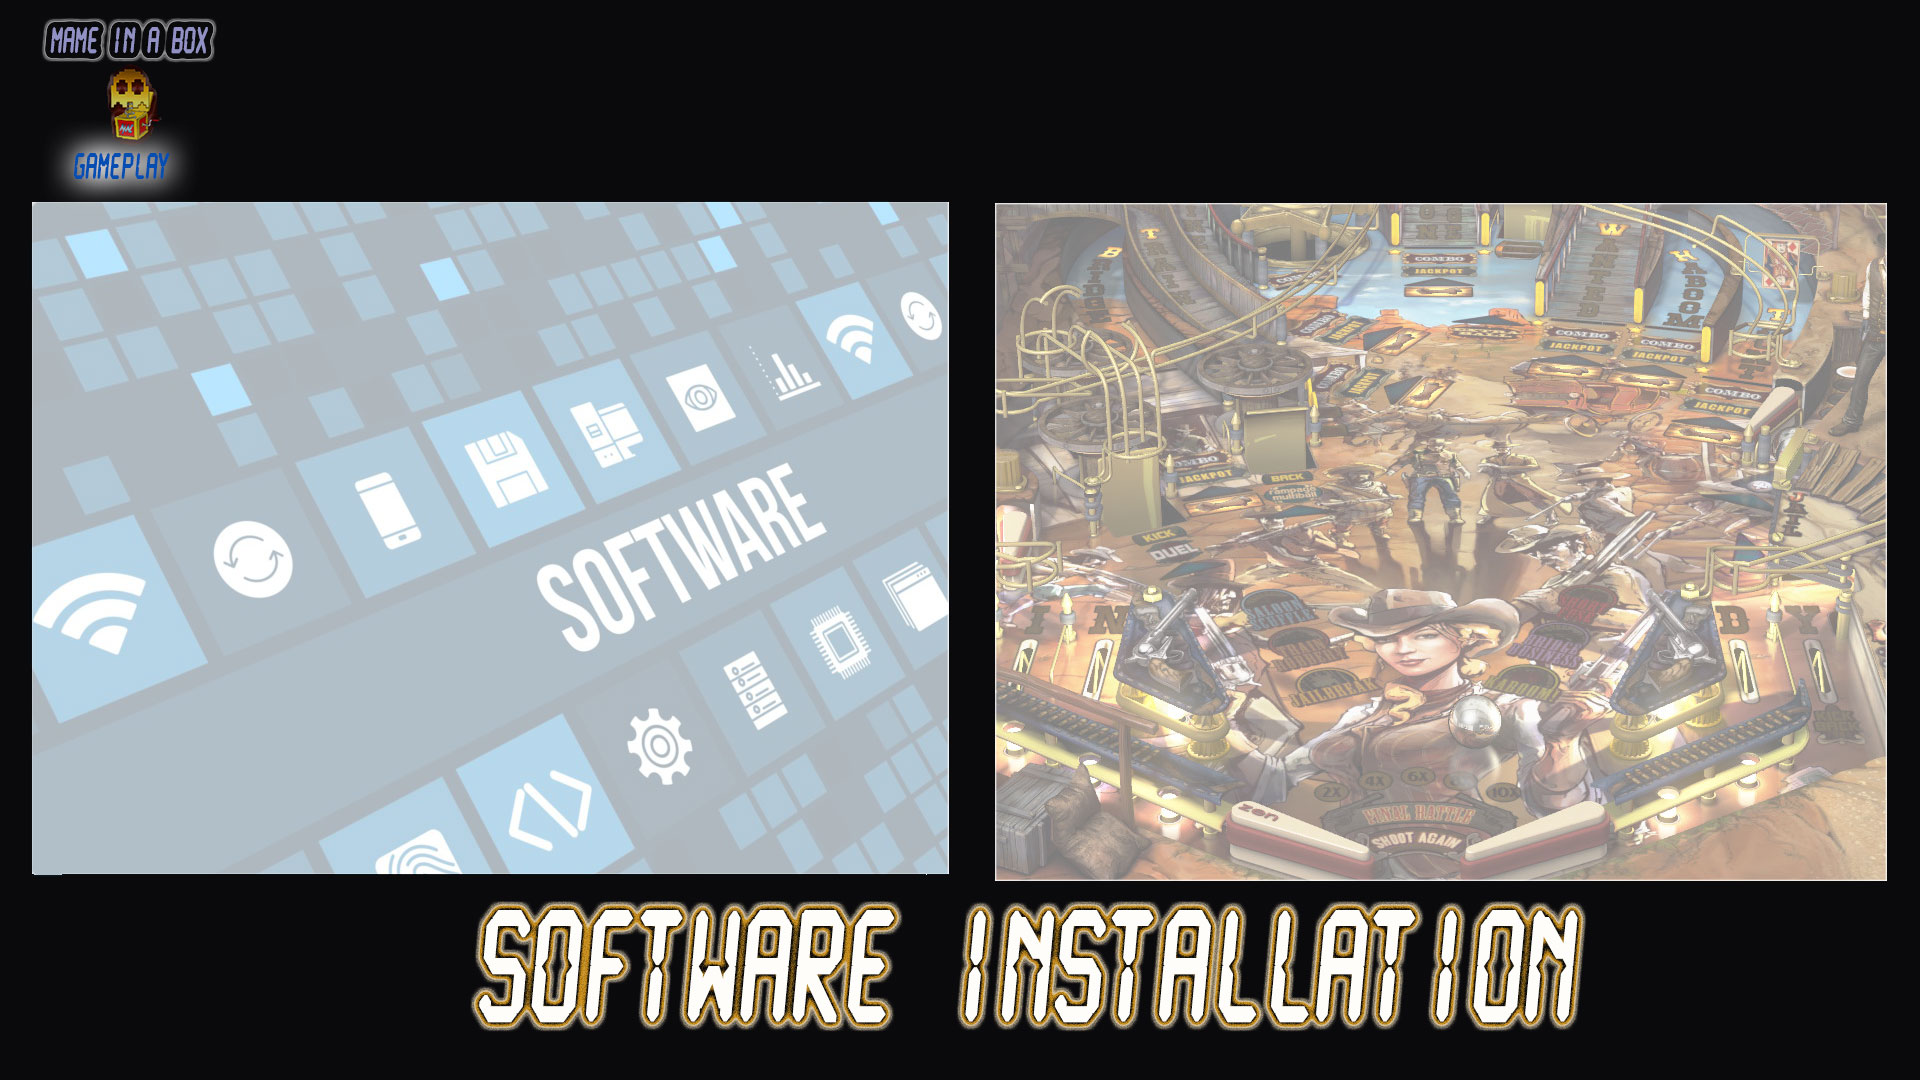 - Tutorials on the different Virtual Pinball software